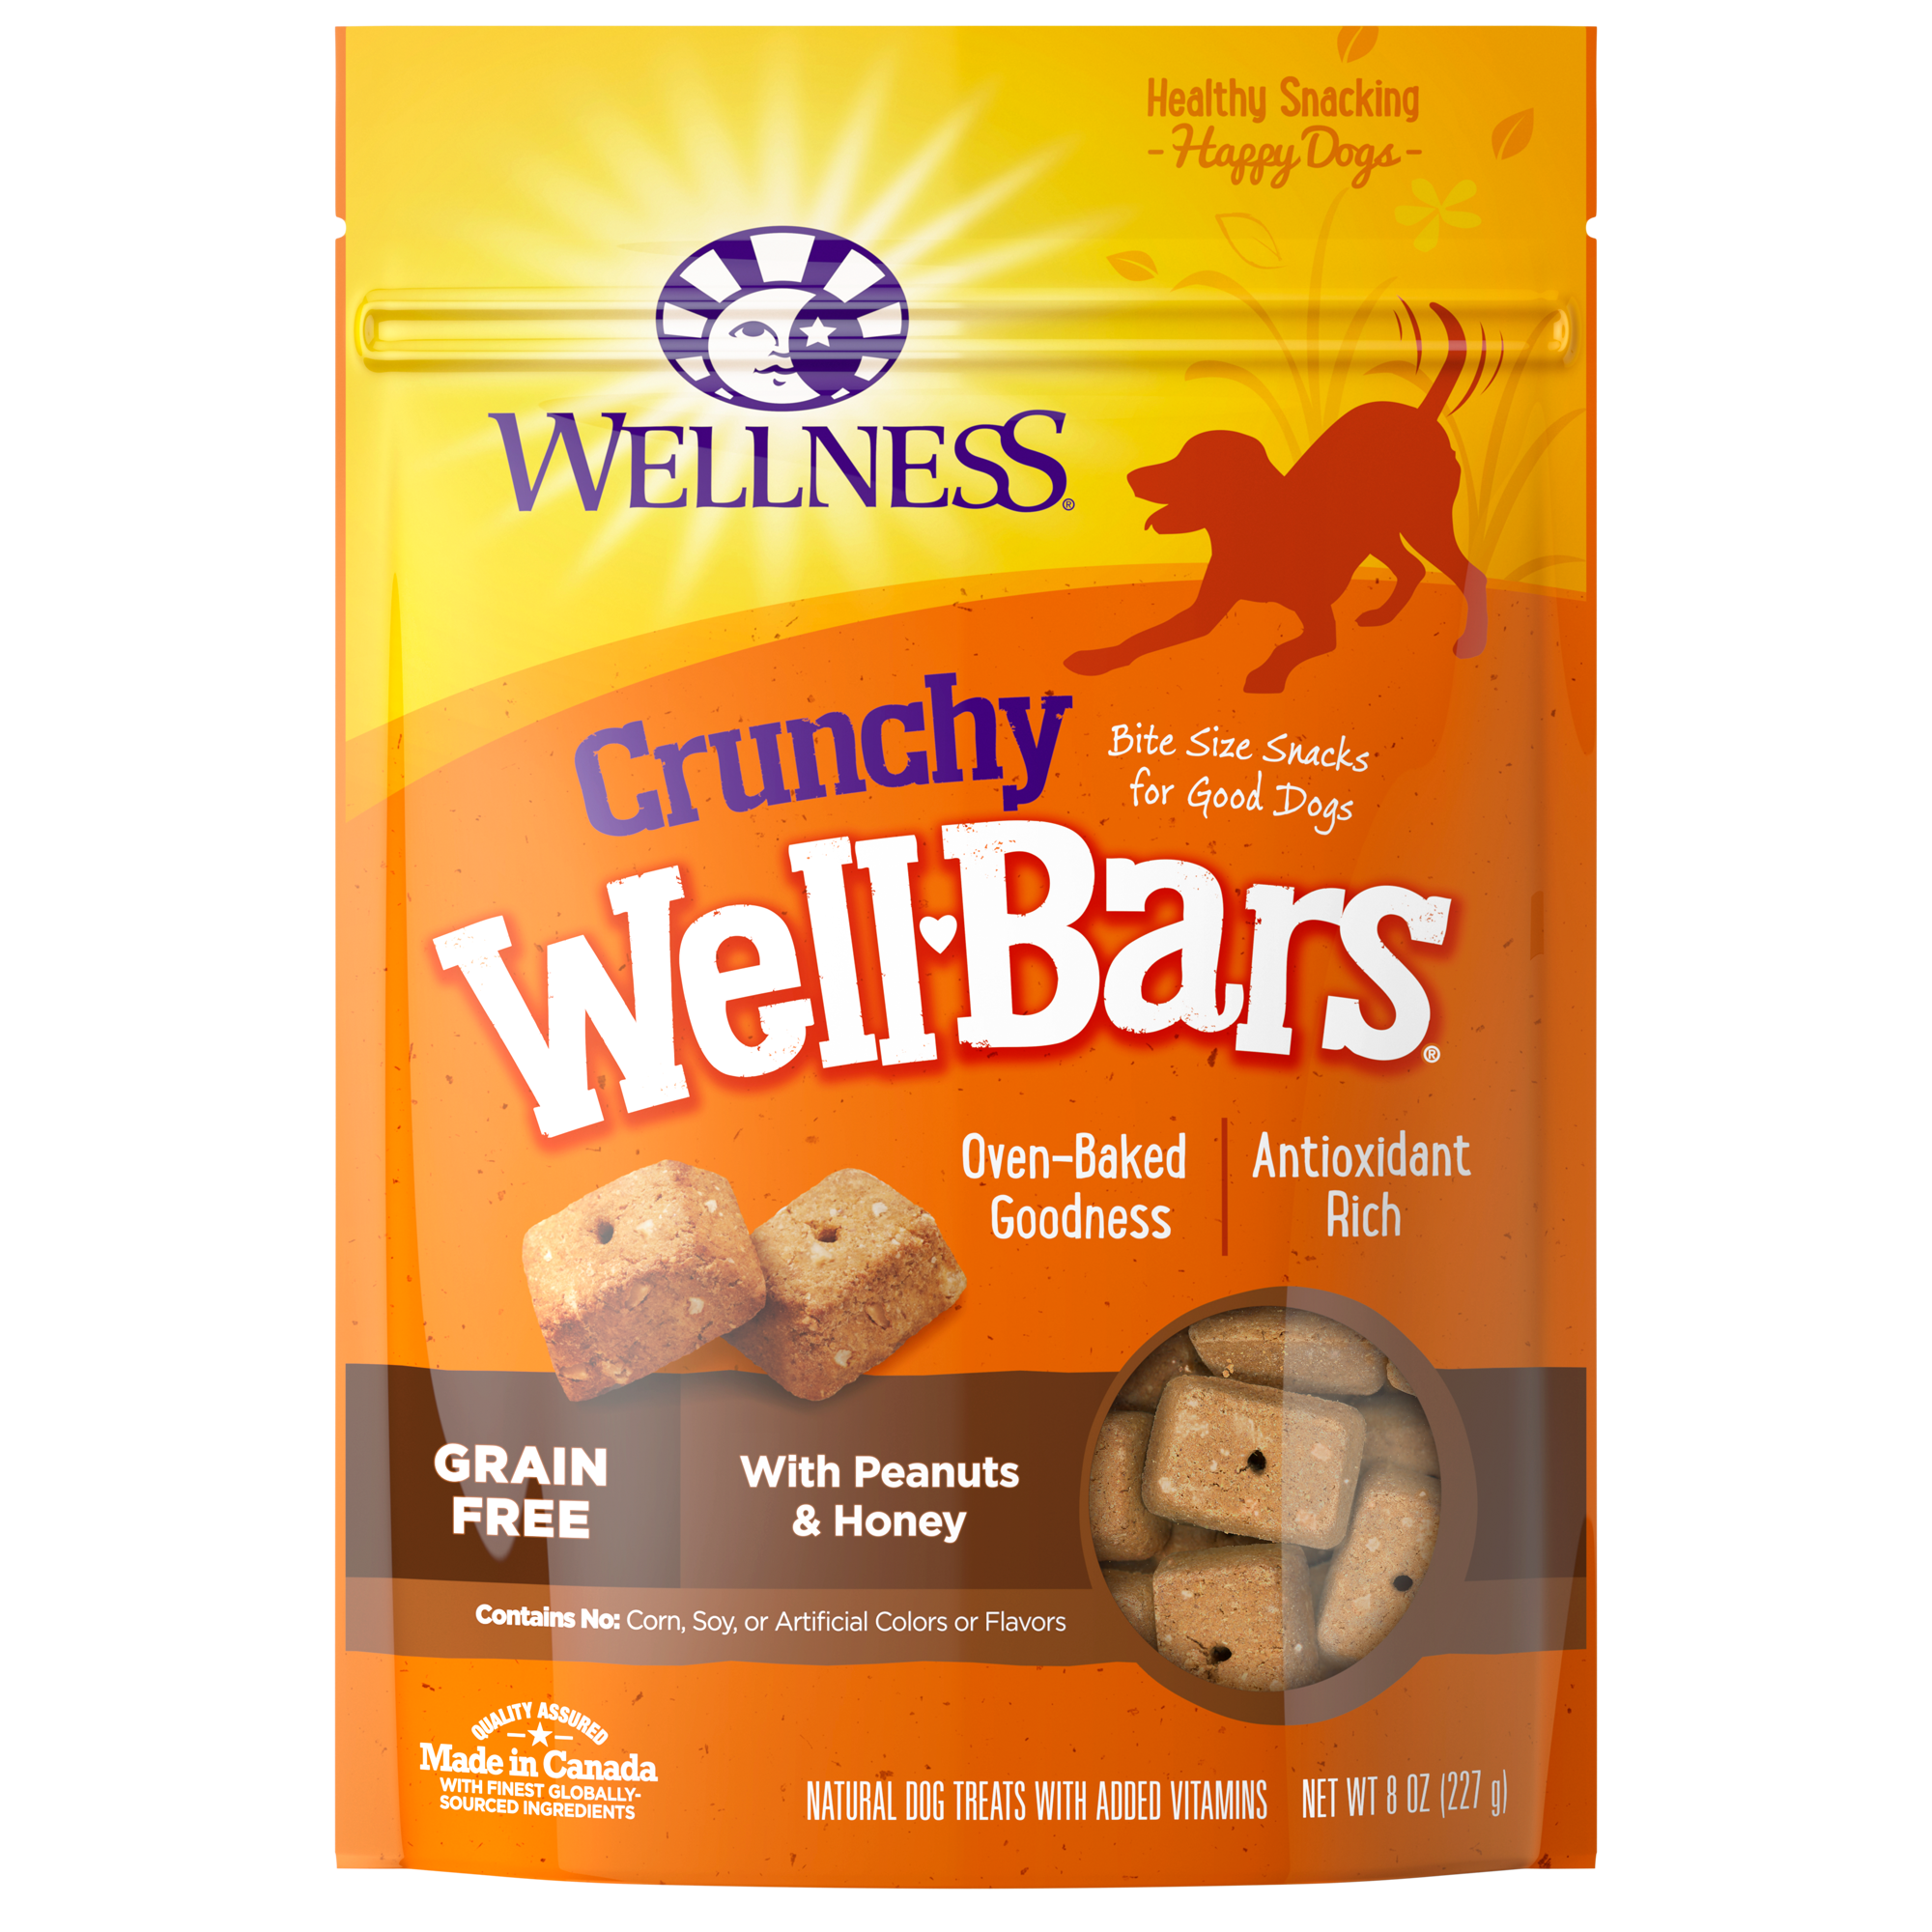 Wellbars Peanut Amp Honey Wellness Pet Food